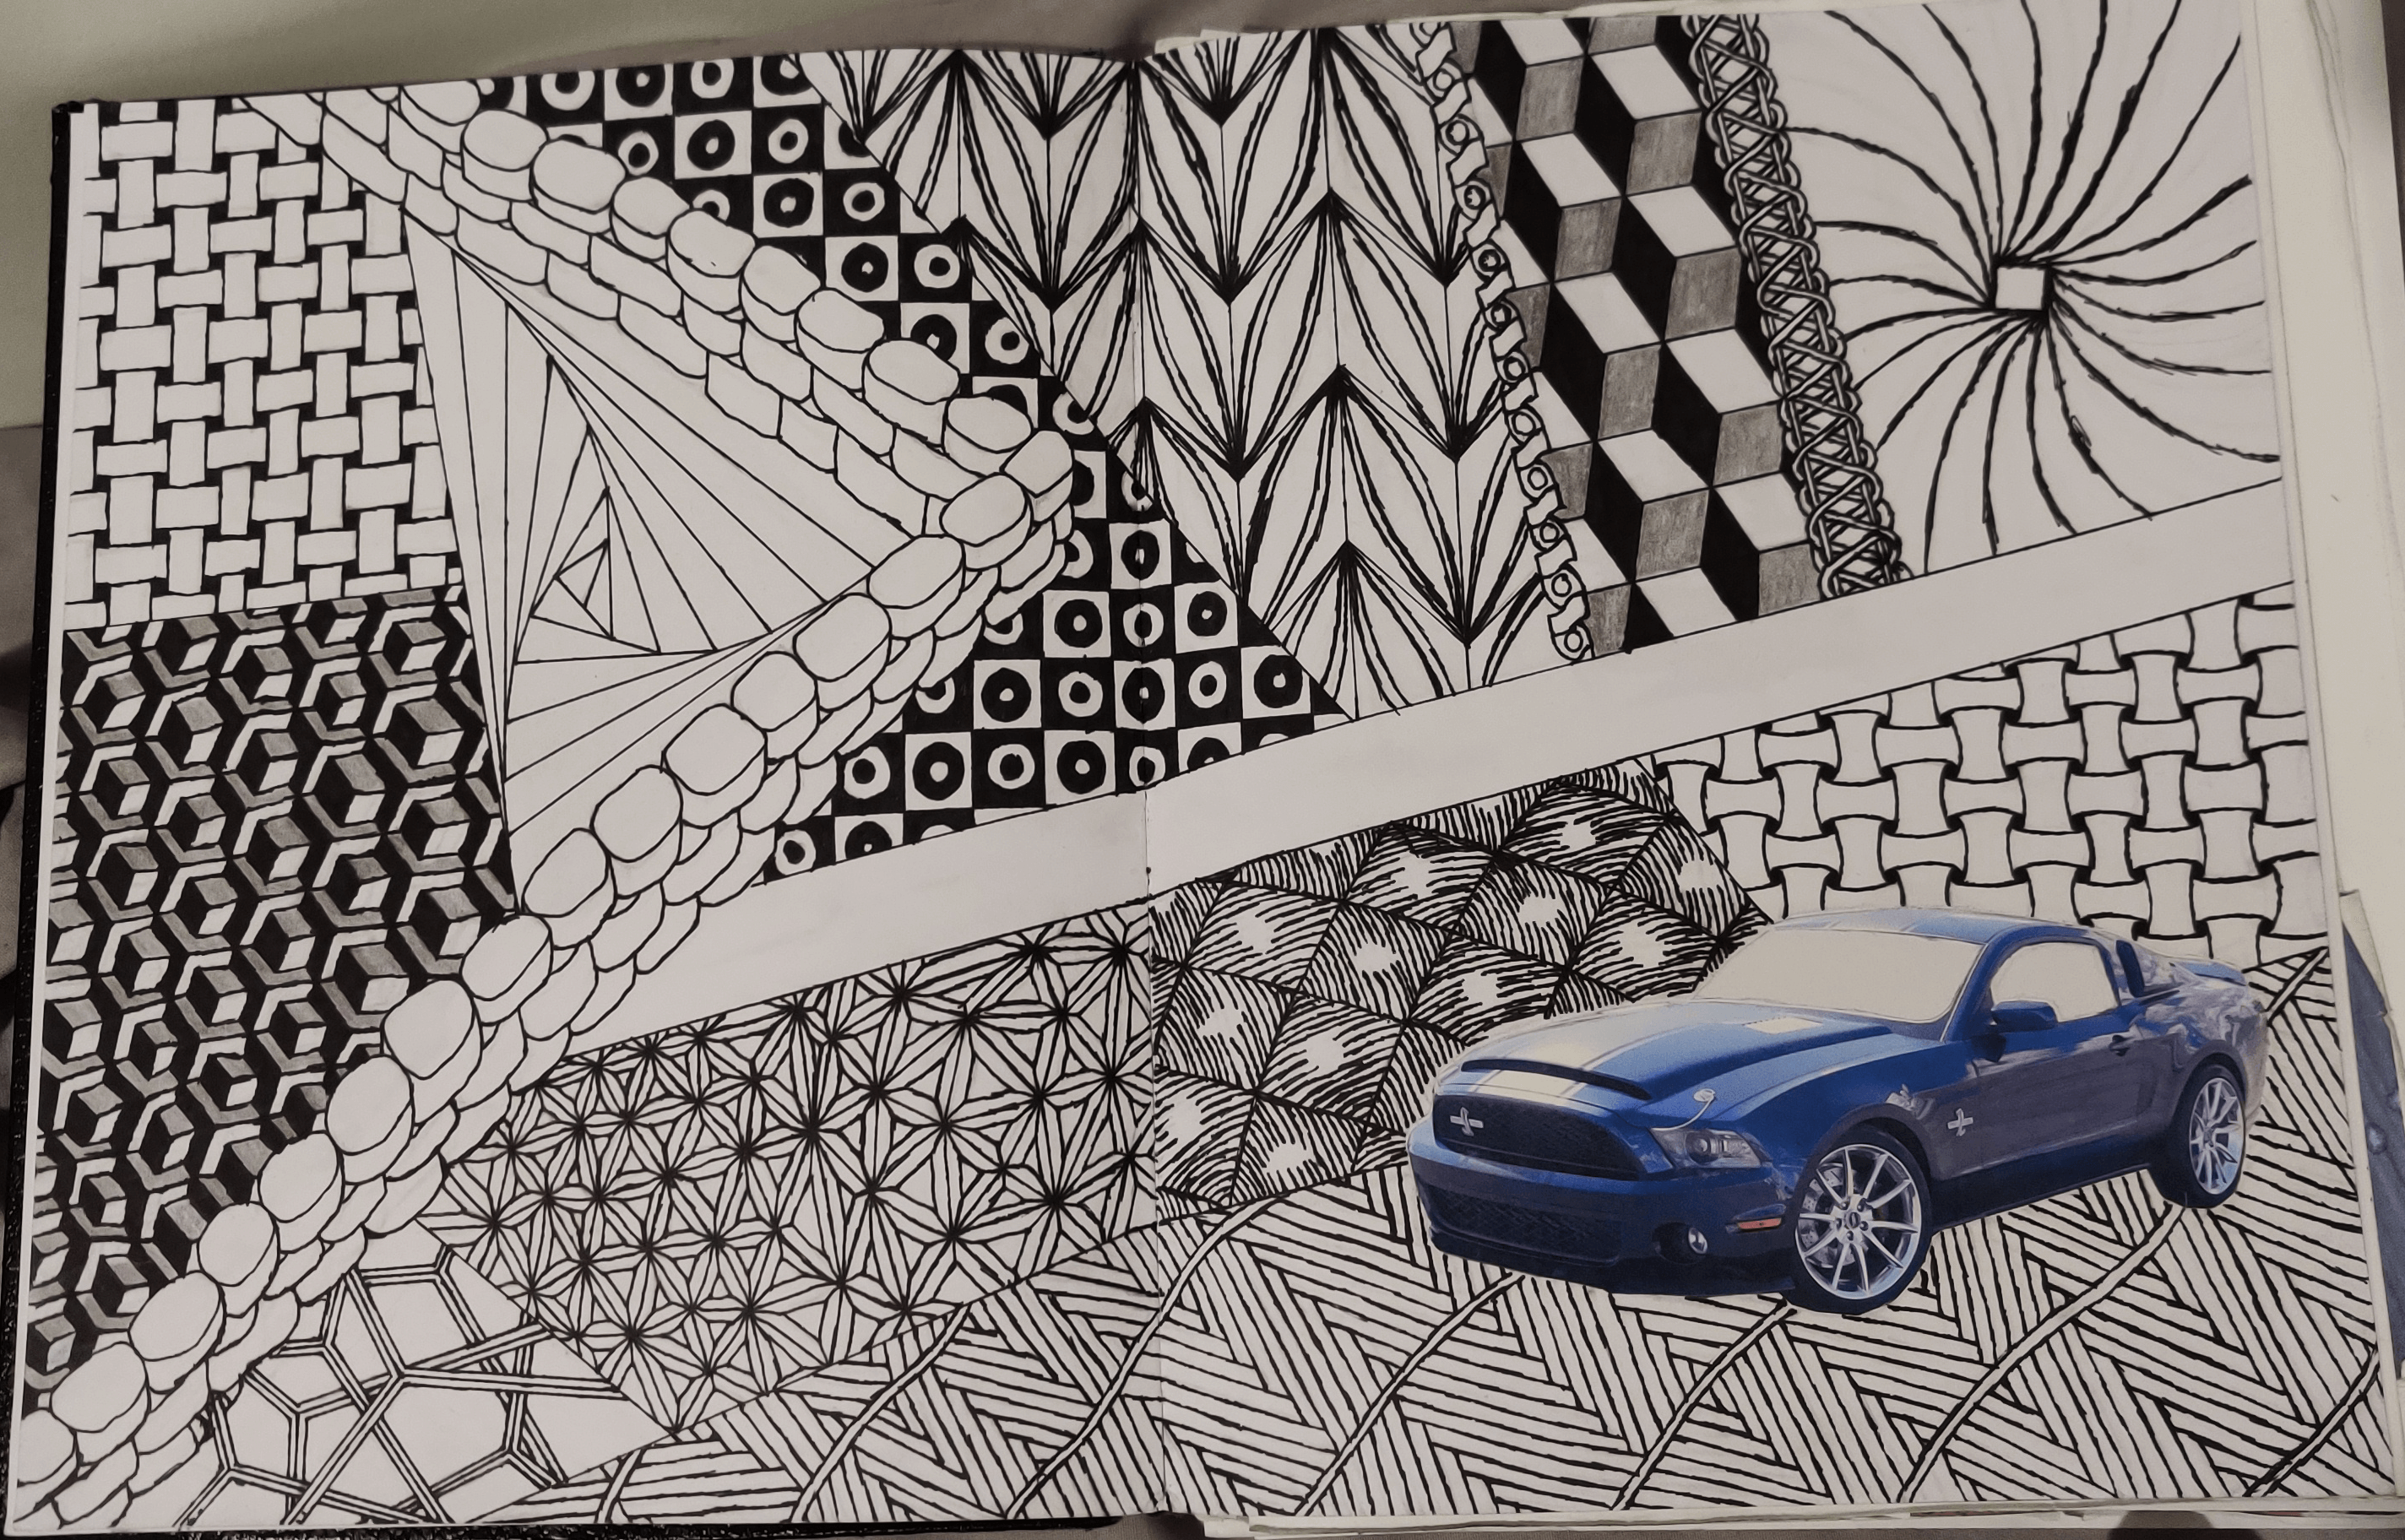 A two-page Zentangle drawing with 17 or so different Zentangle patterns and a cutout of a blue Mustang.